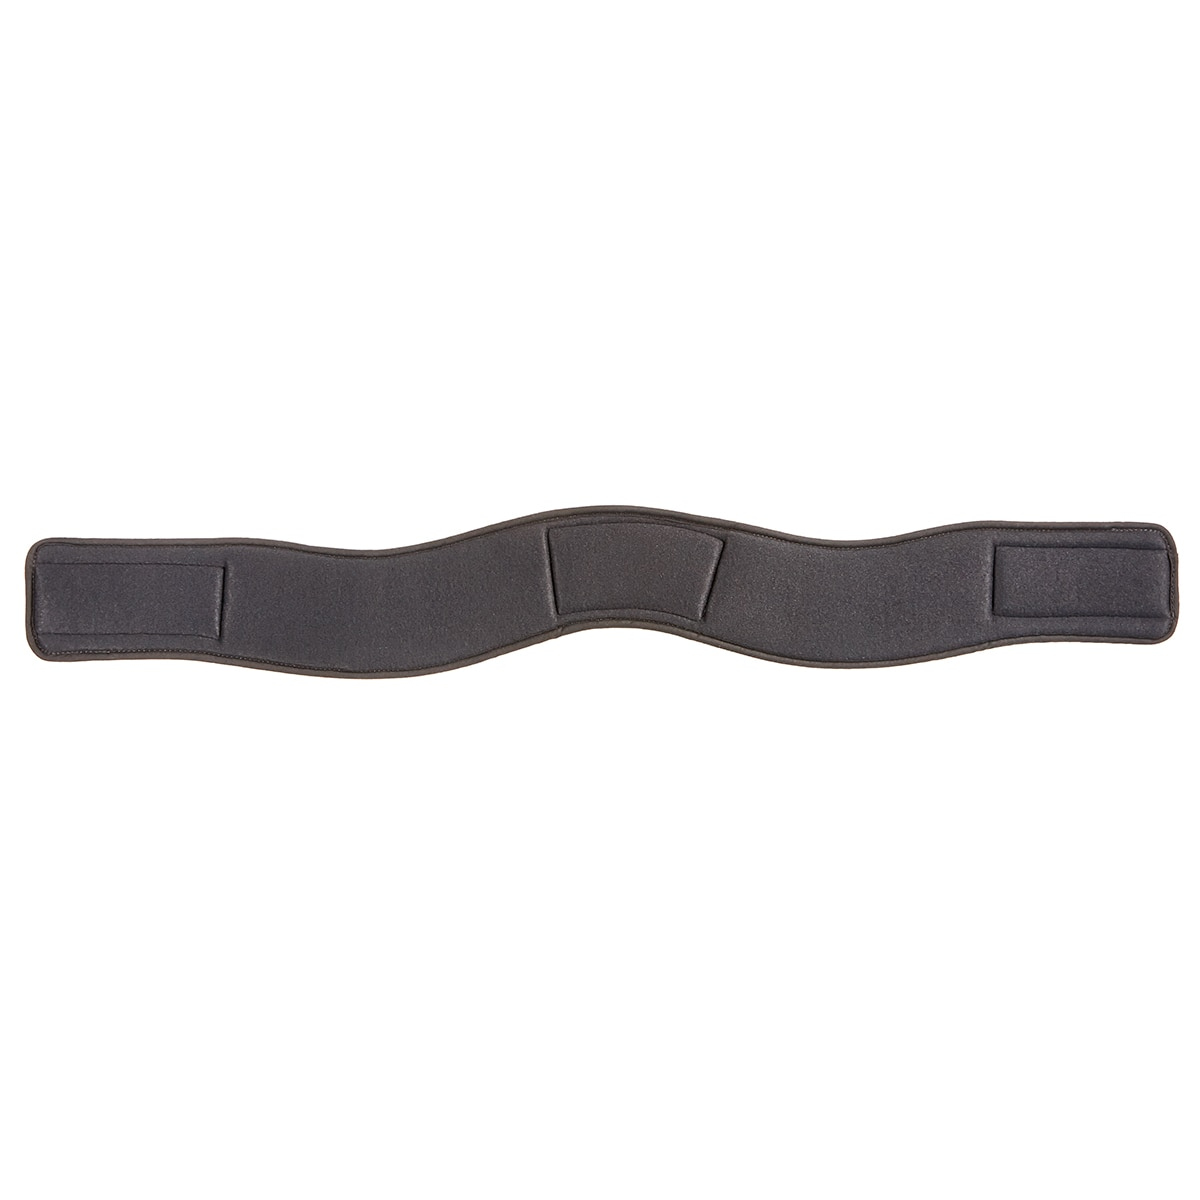 EquiFit Anatomical Pony Hunter Girth w/ SheepsWool Liner